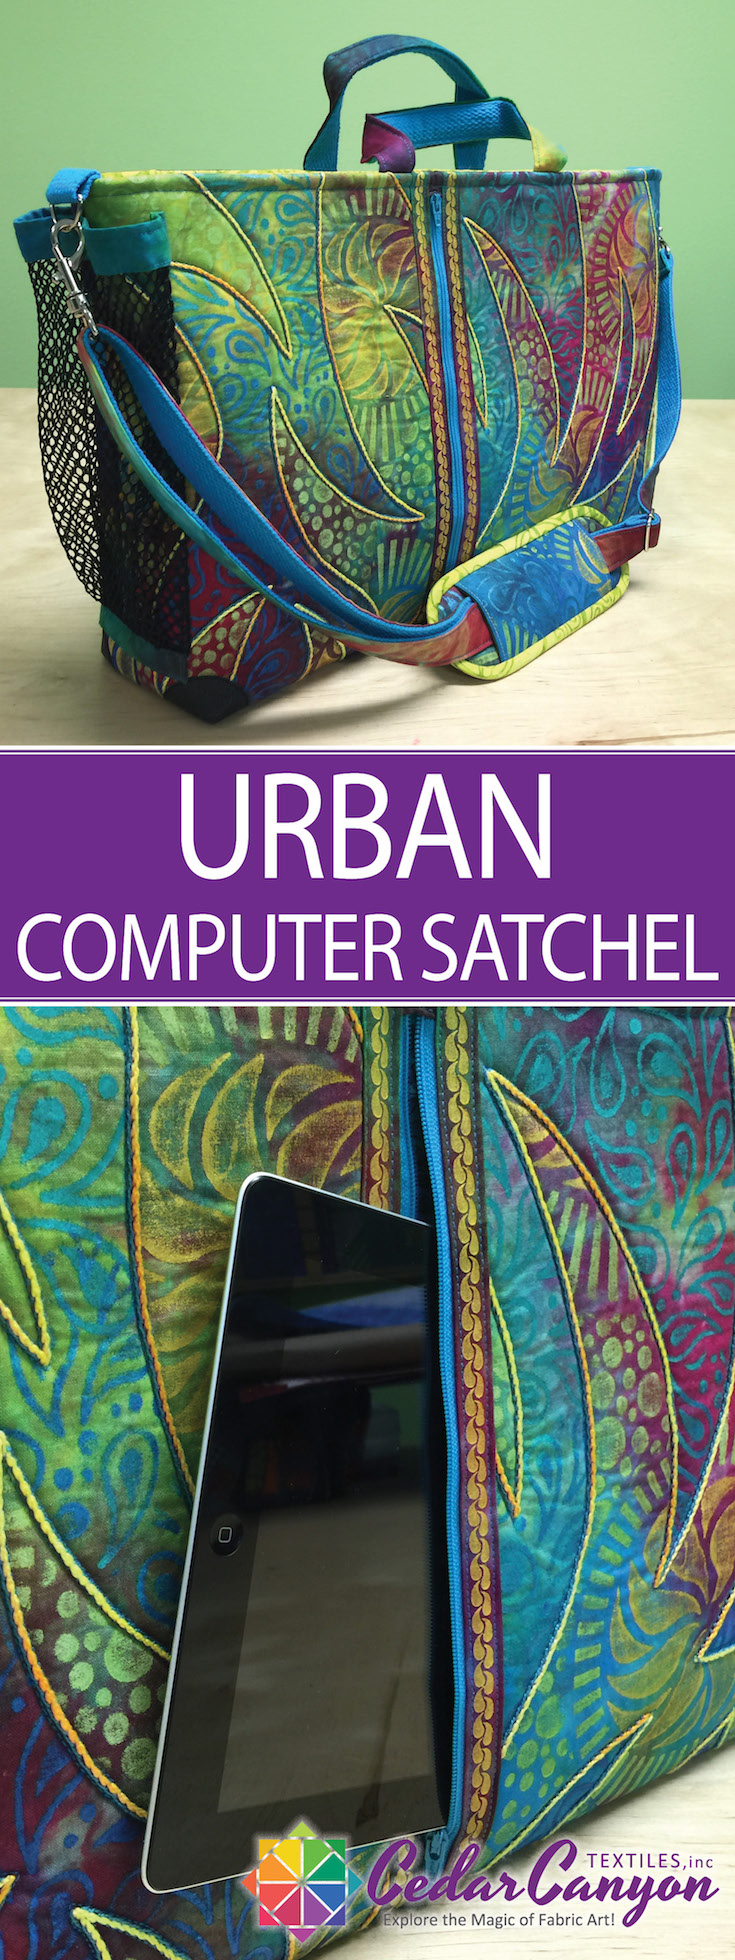 Urban-Computer-Satchel-PIN